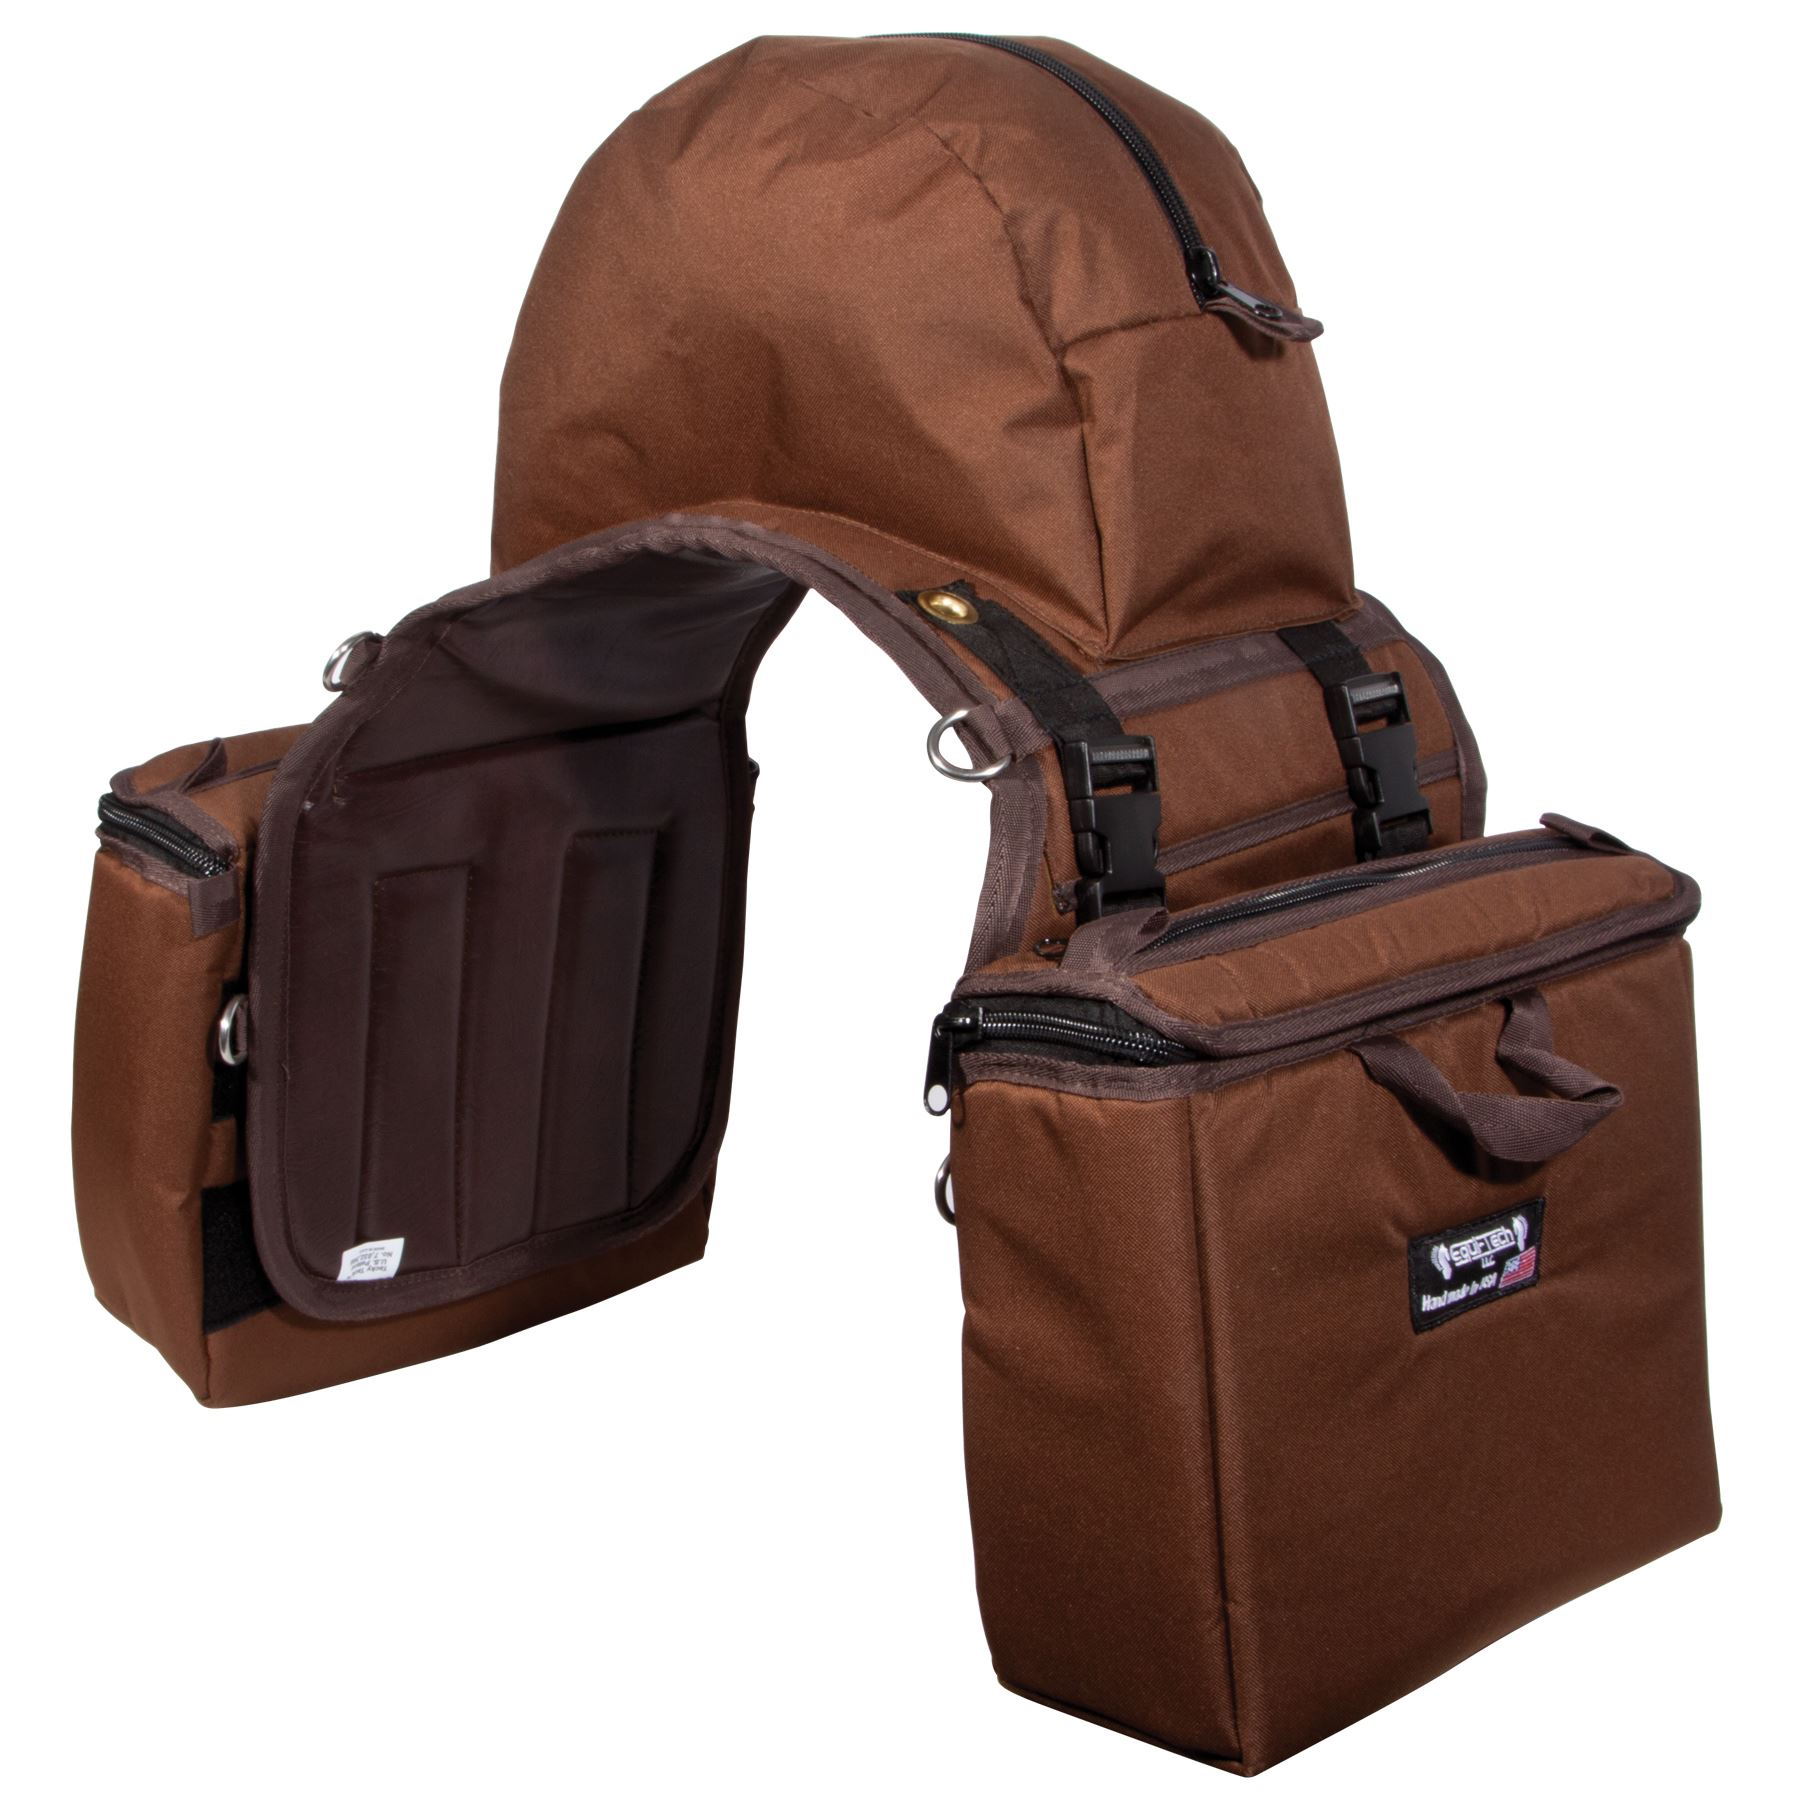 062ad8eee5e0 Equi-Tech Stay Put Insulated Saddle Bag-Large